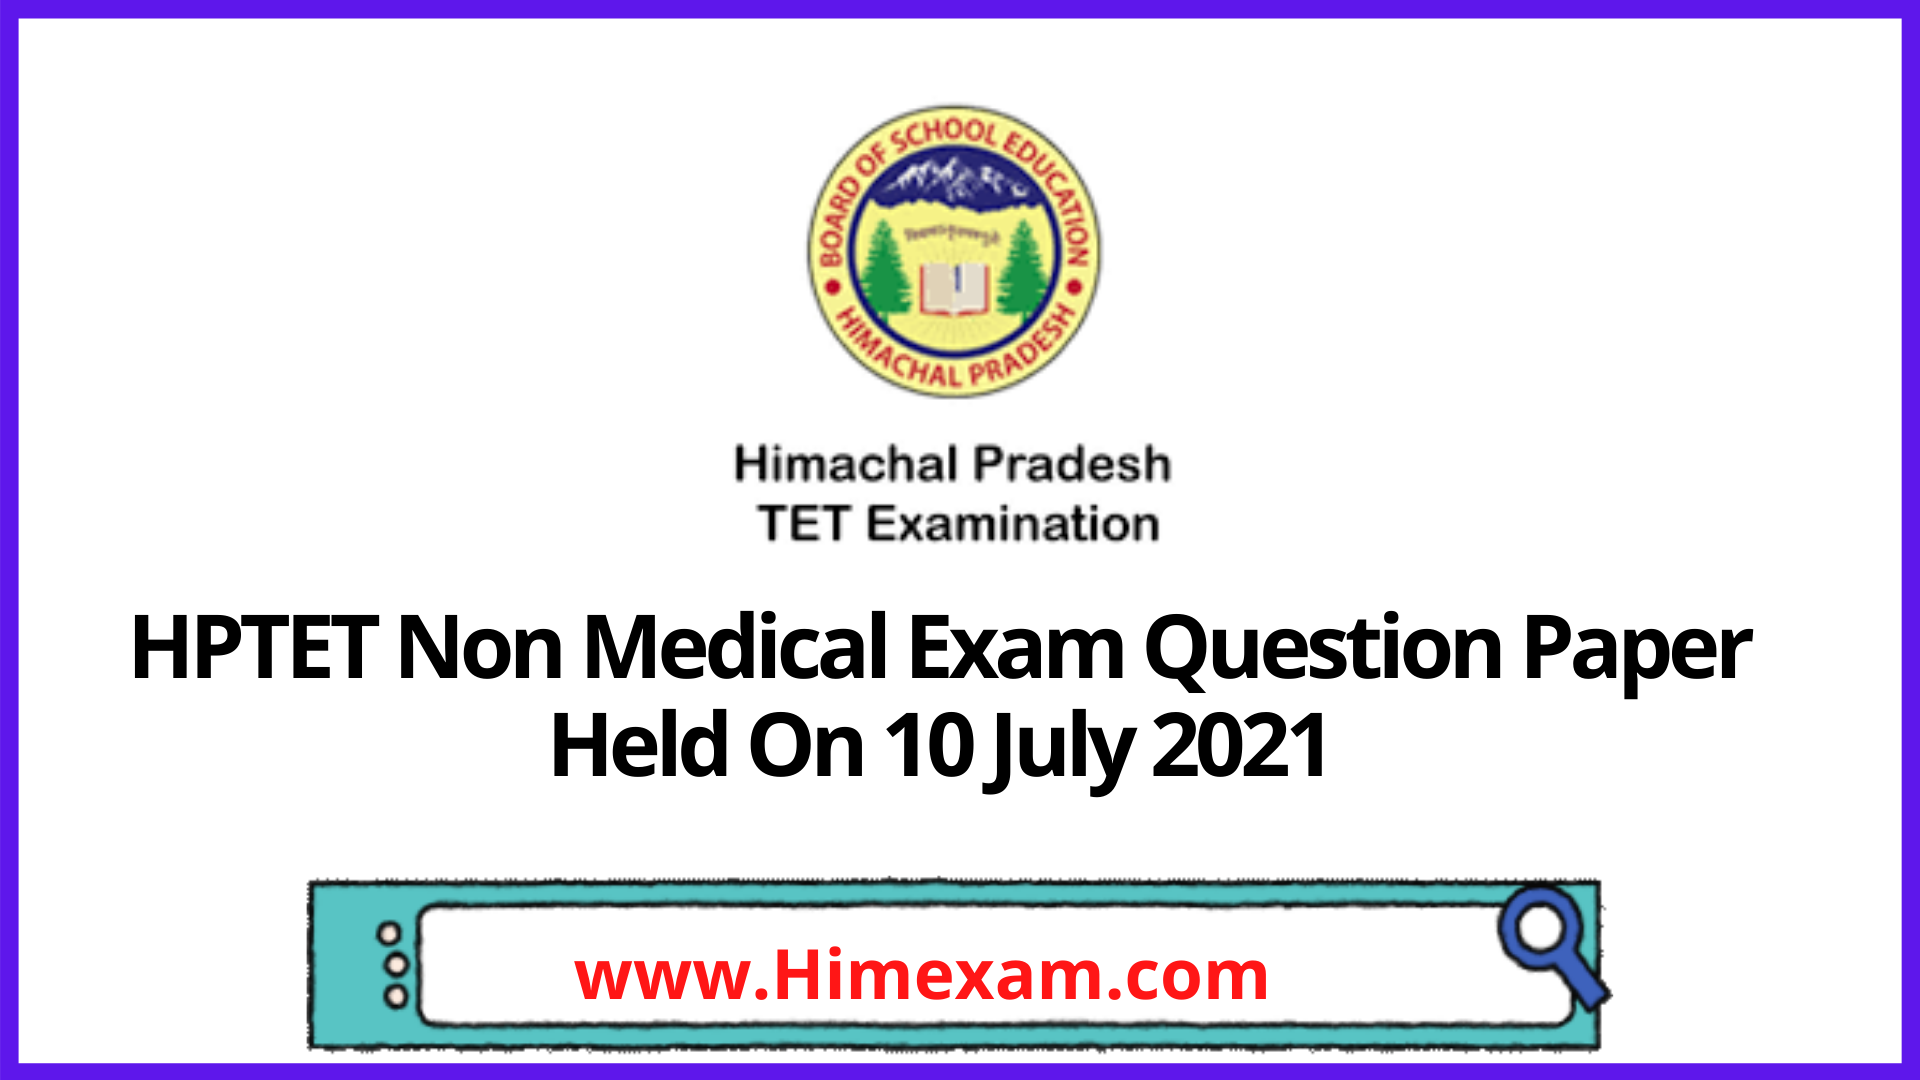 HPTET Nm Exam Question Paper Held On 10 July 2021